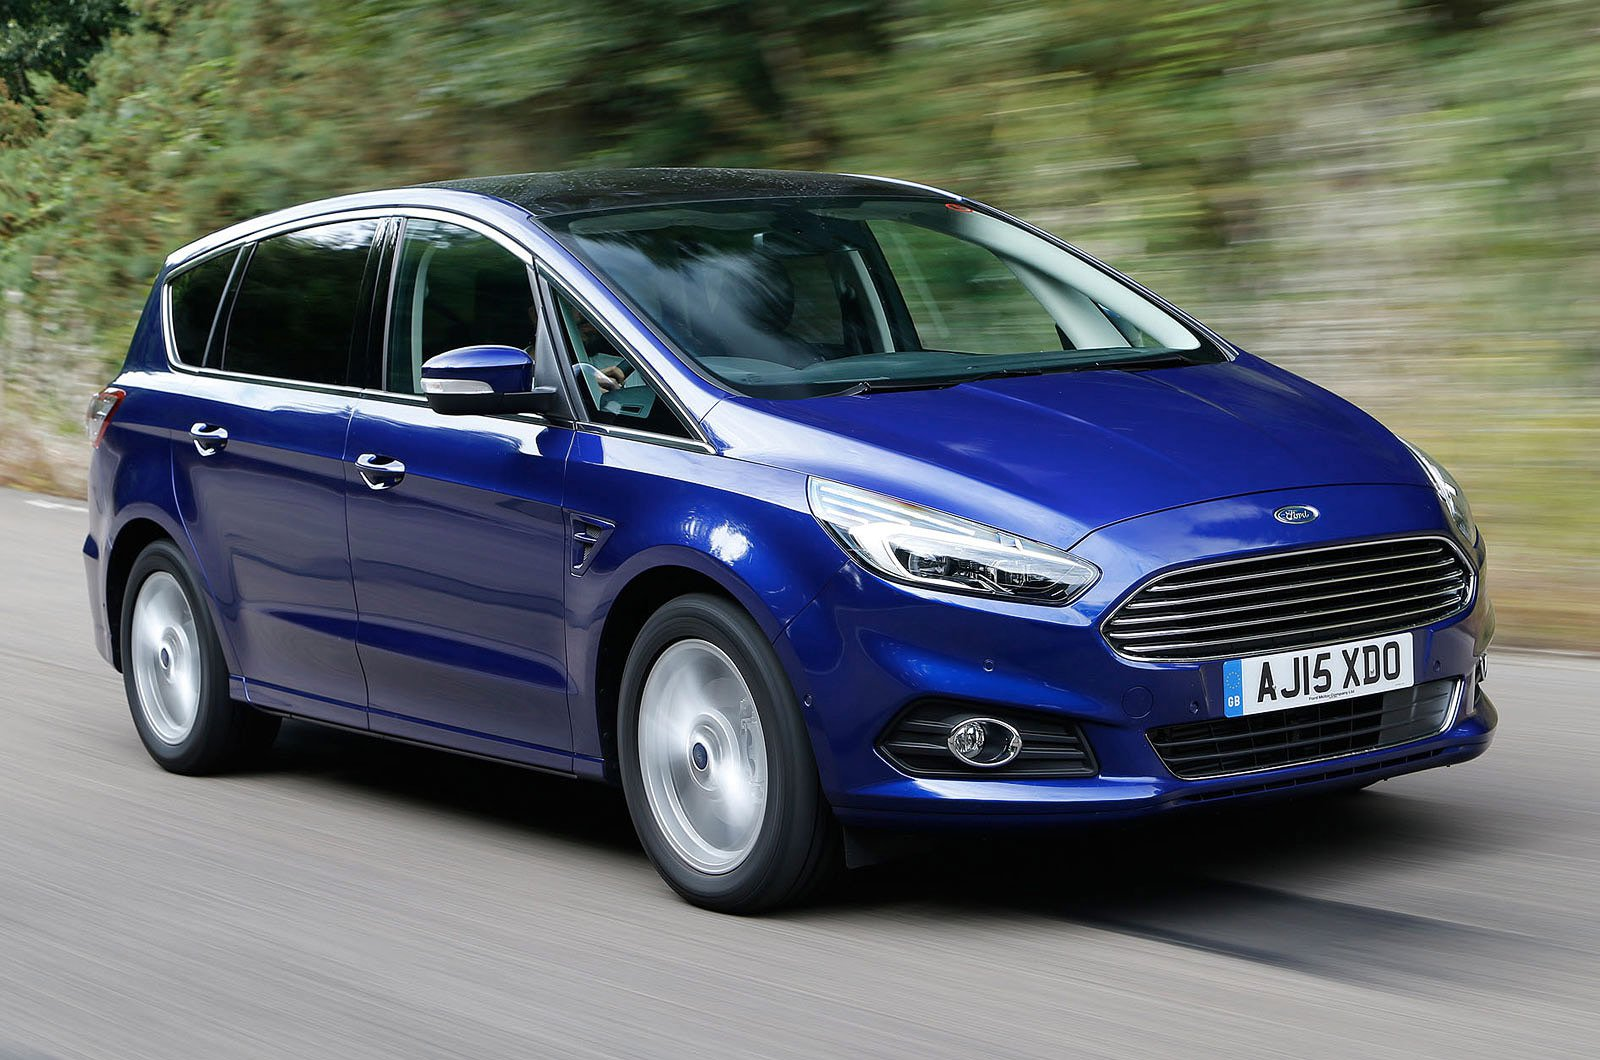 Ford S-MAX ST-Line 2.0 EcoBlue 190PS